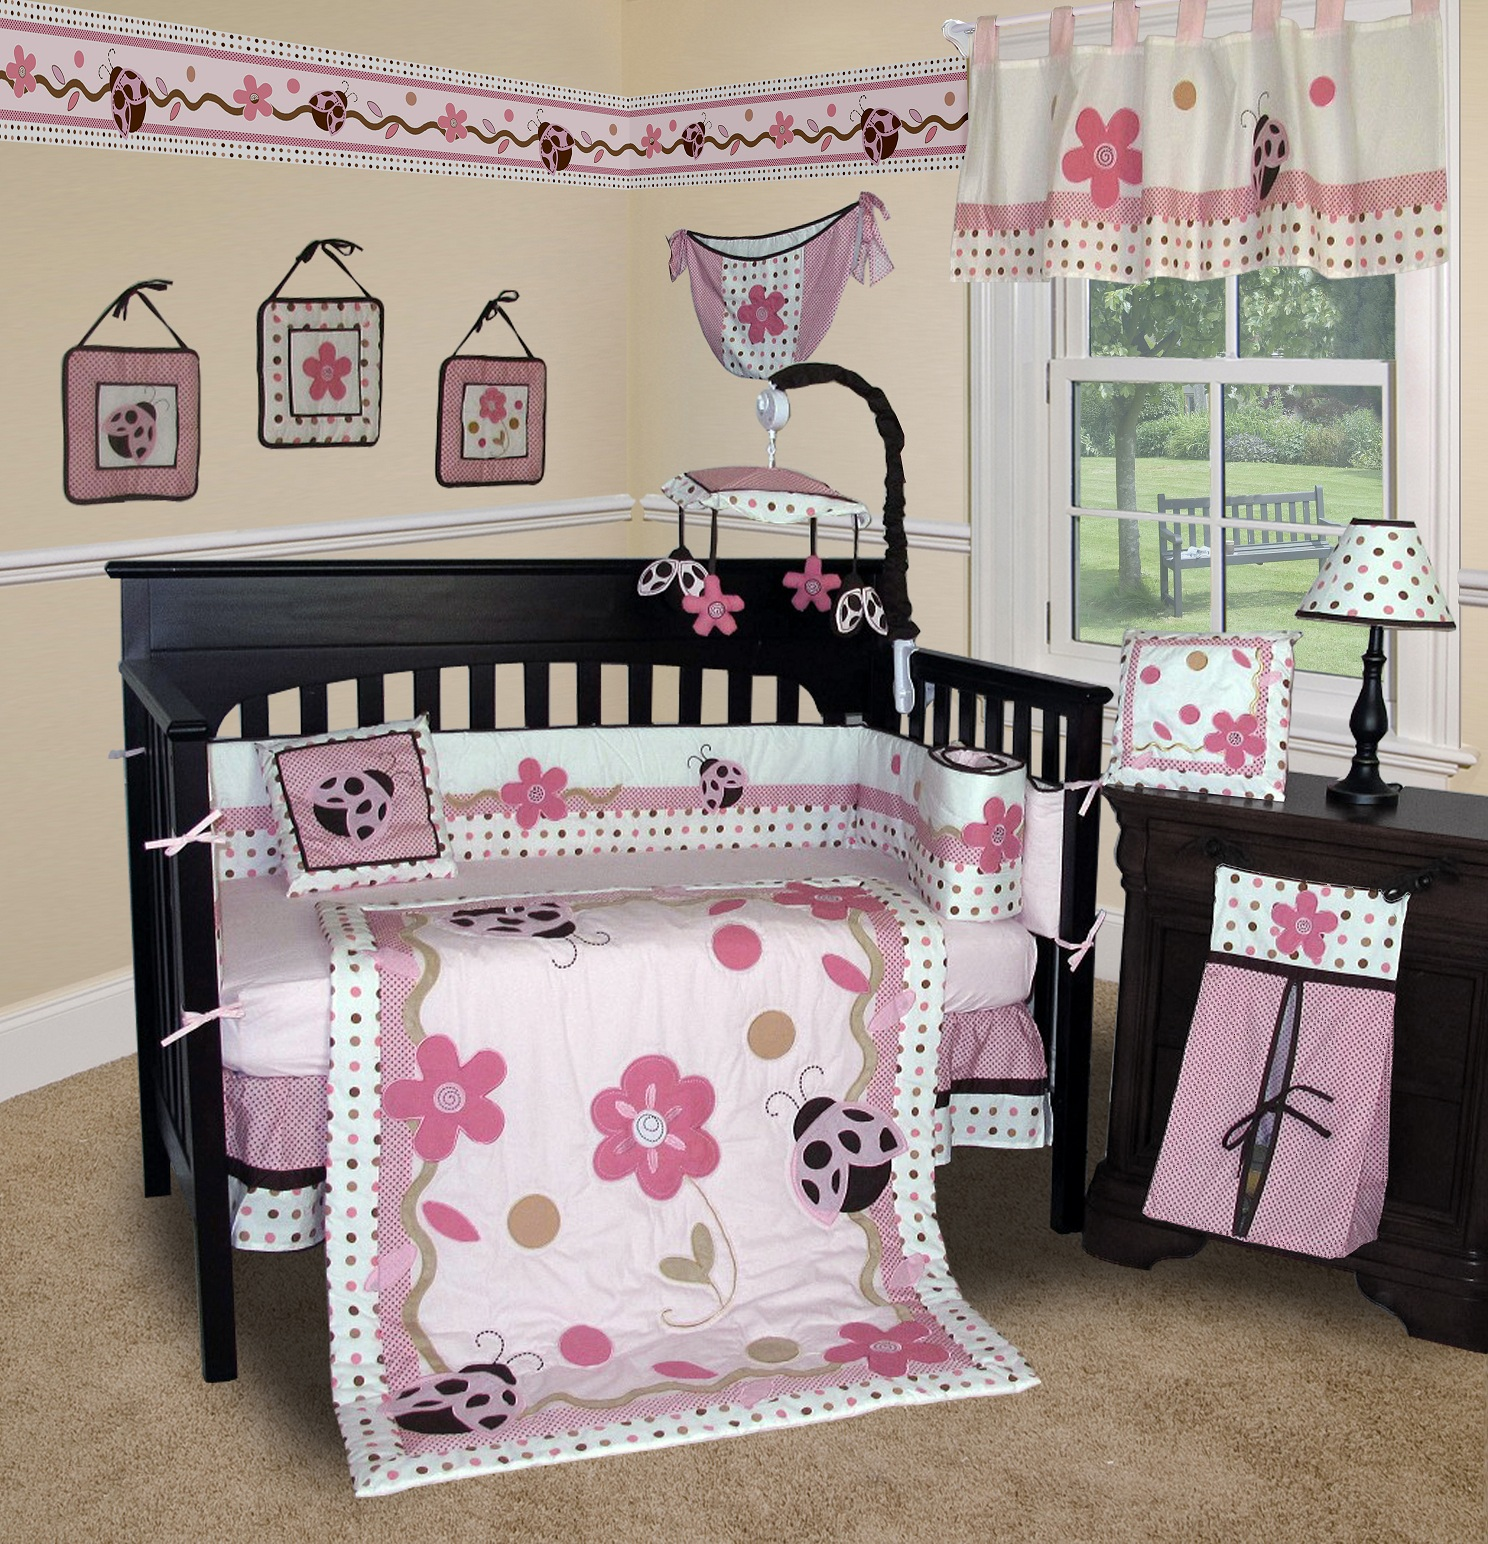 pink crib bed bedding and large traditions gray baby girl nursery